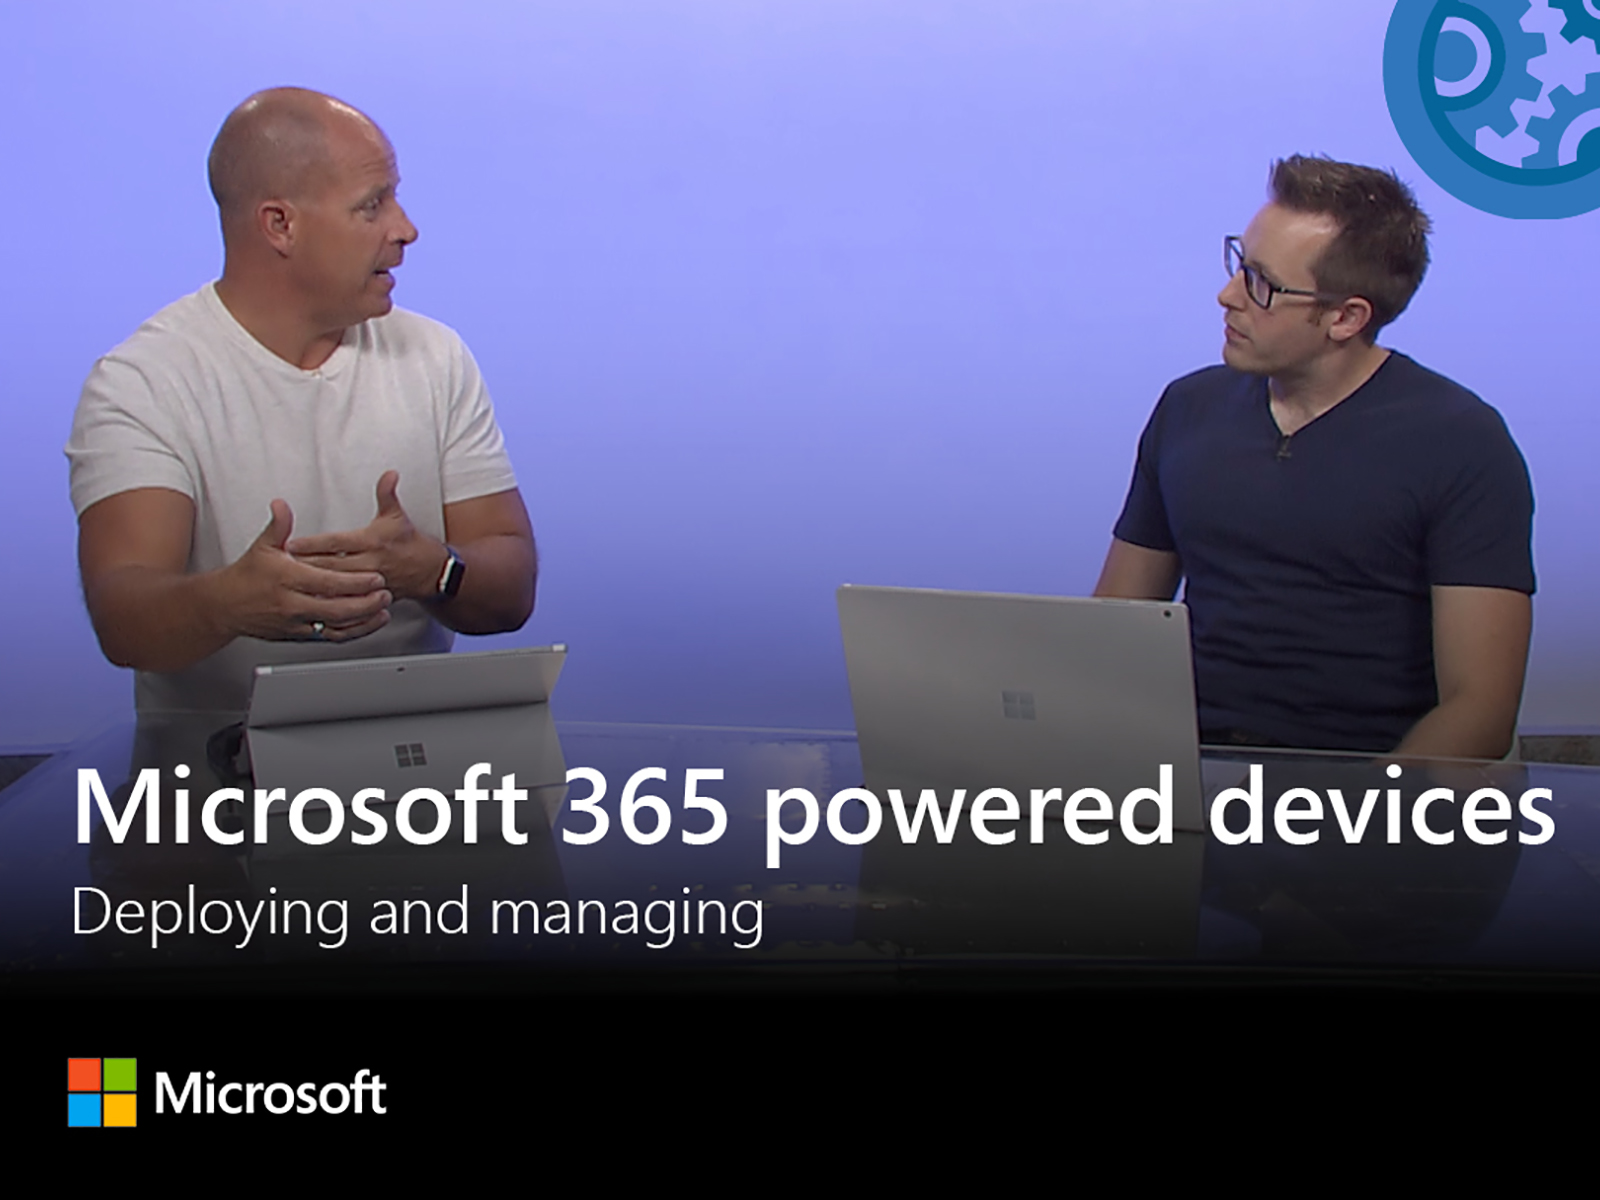 Artwork for Deploying and managing Microsoft 365 powered devices